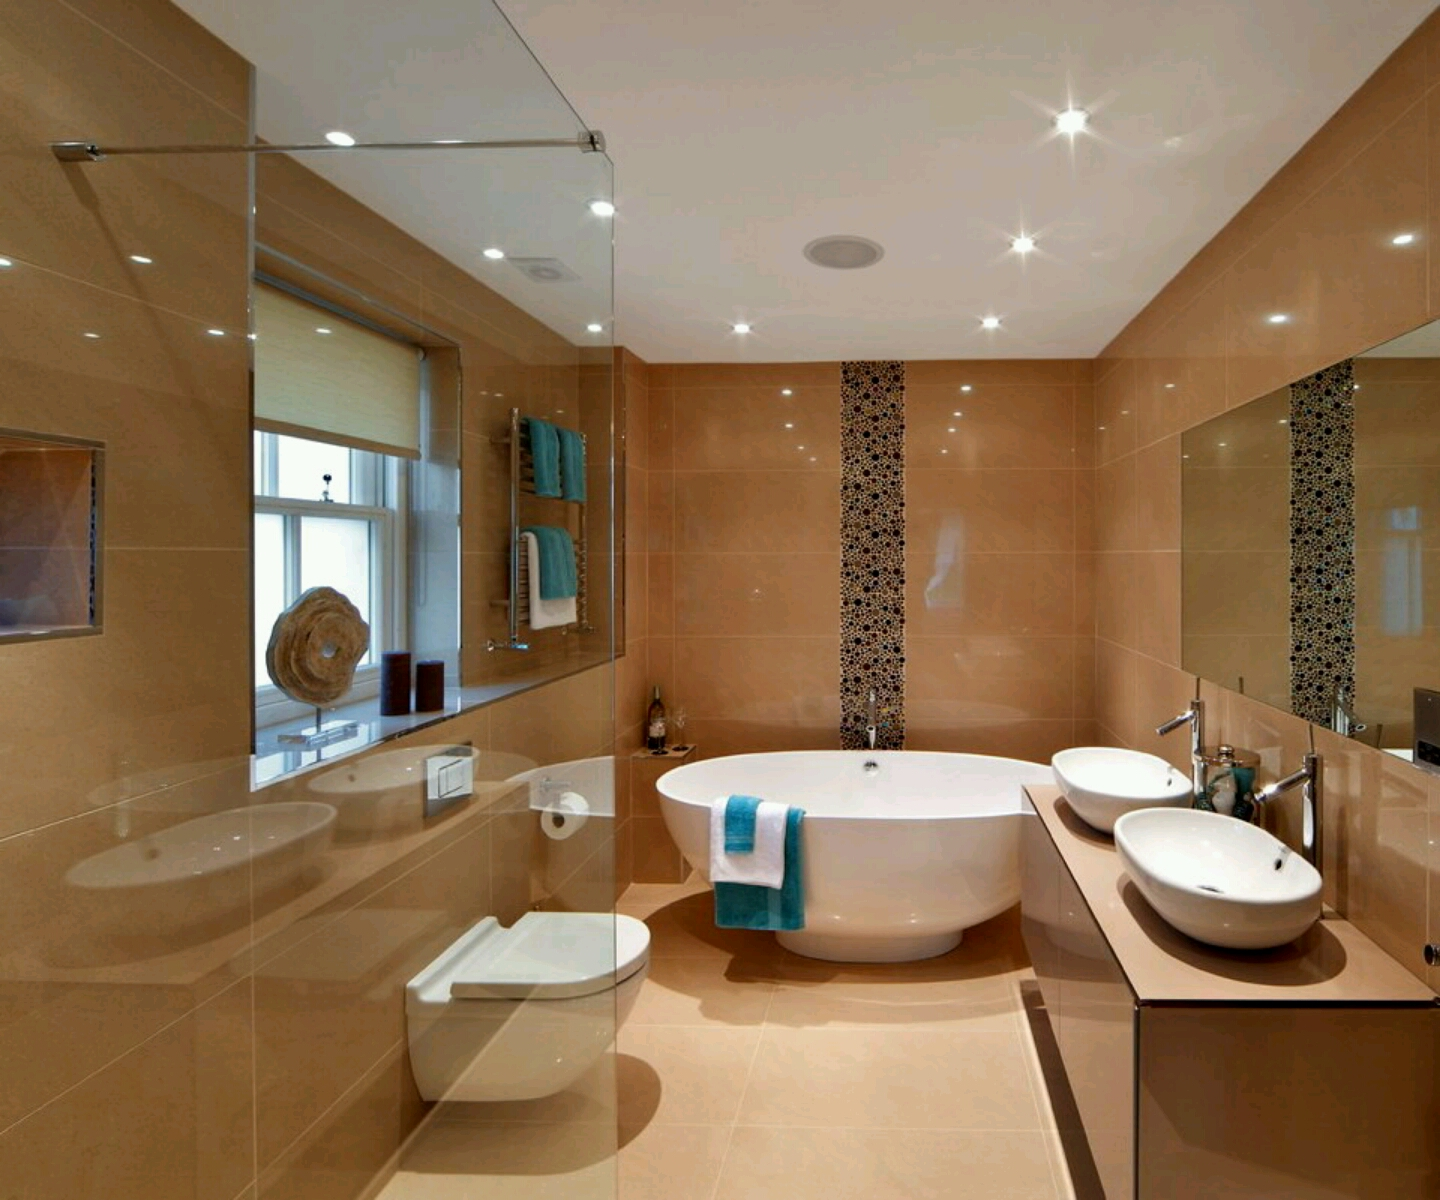 New home designs latest luxury modern bathrooms designs for Sophisticated bathroom design